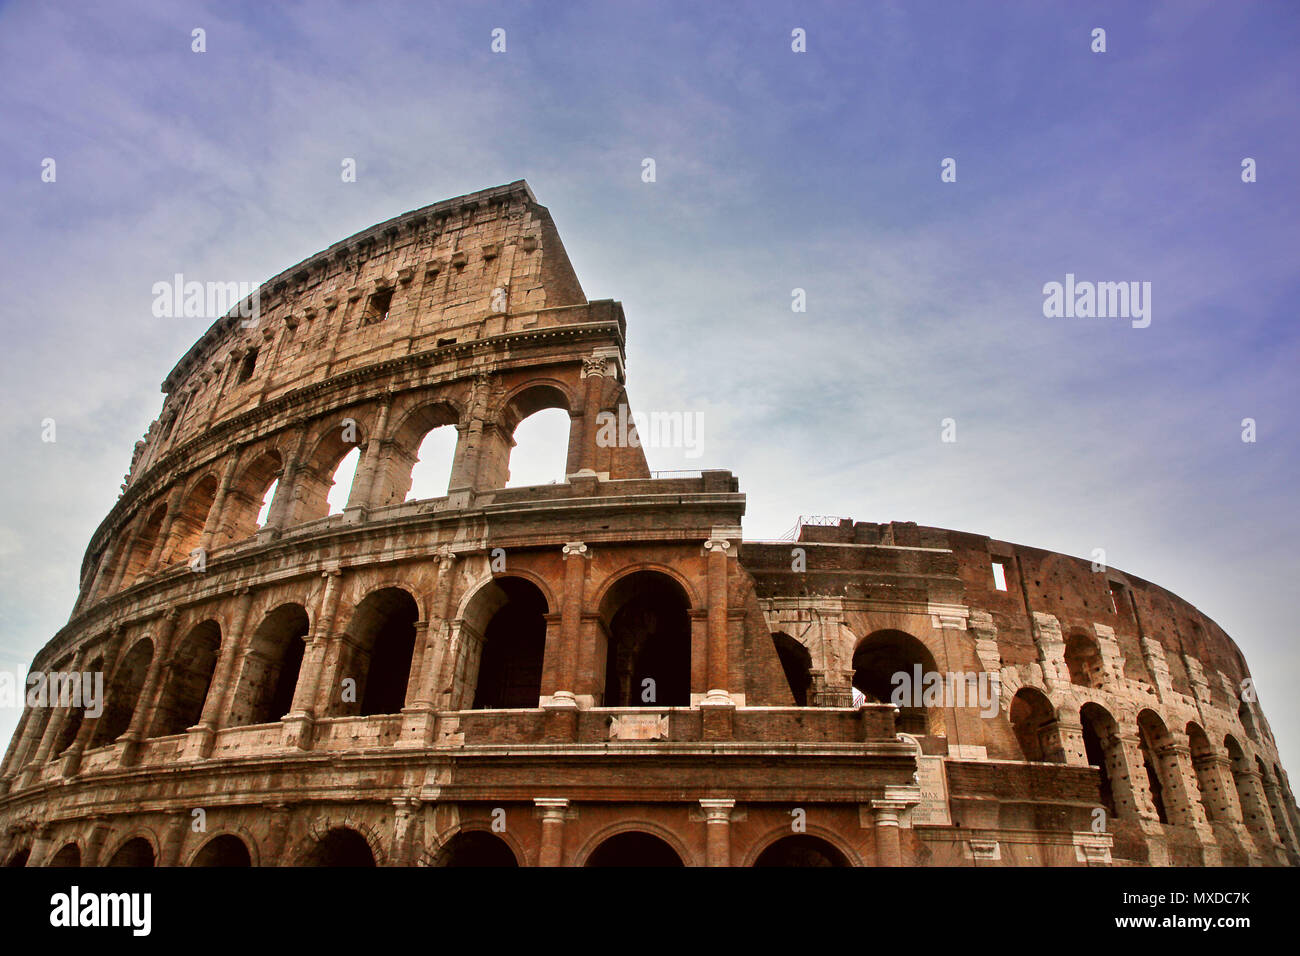 Famous Roman Coliseum against a blue early morning sky - Stock Image